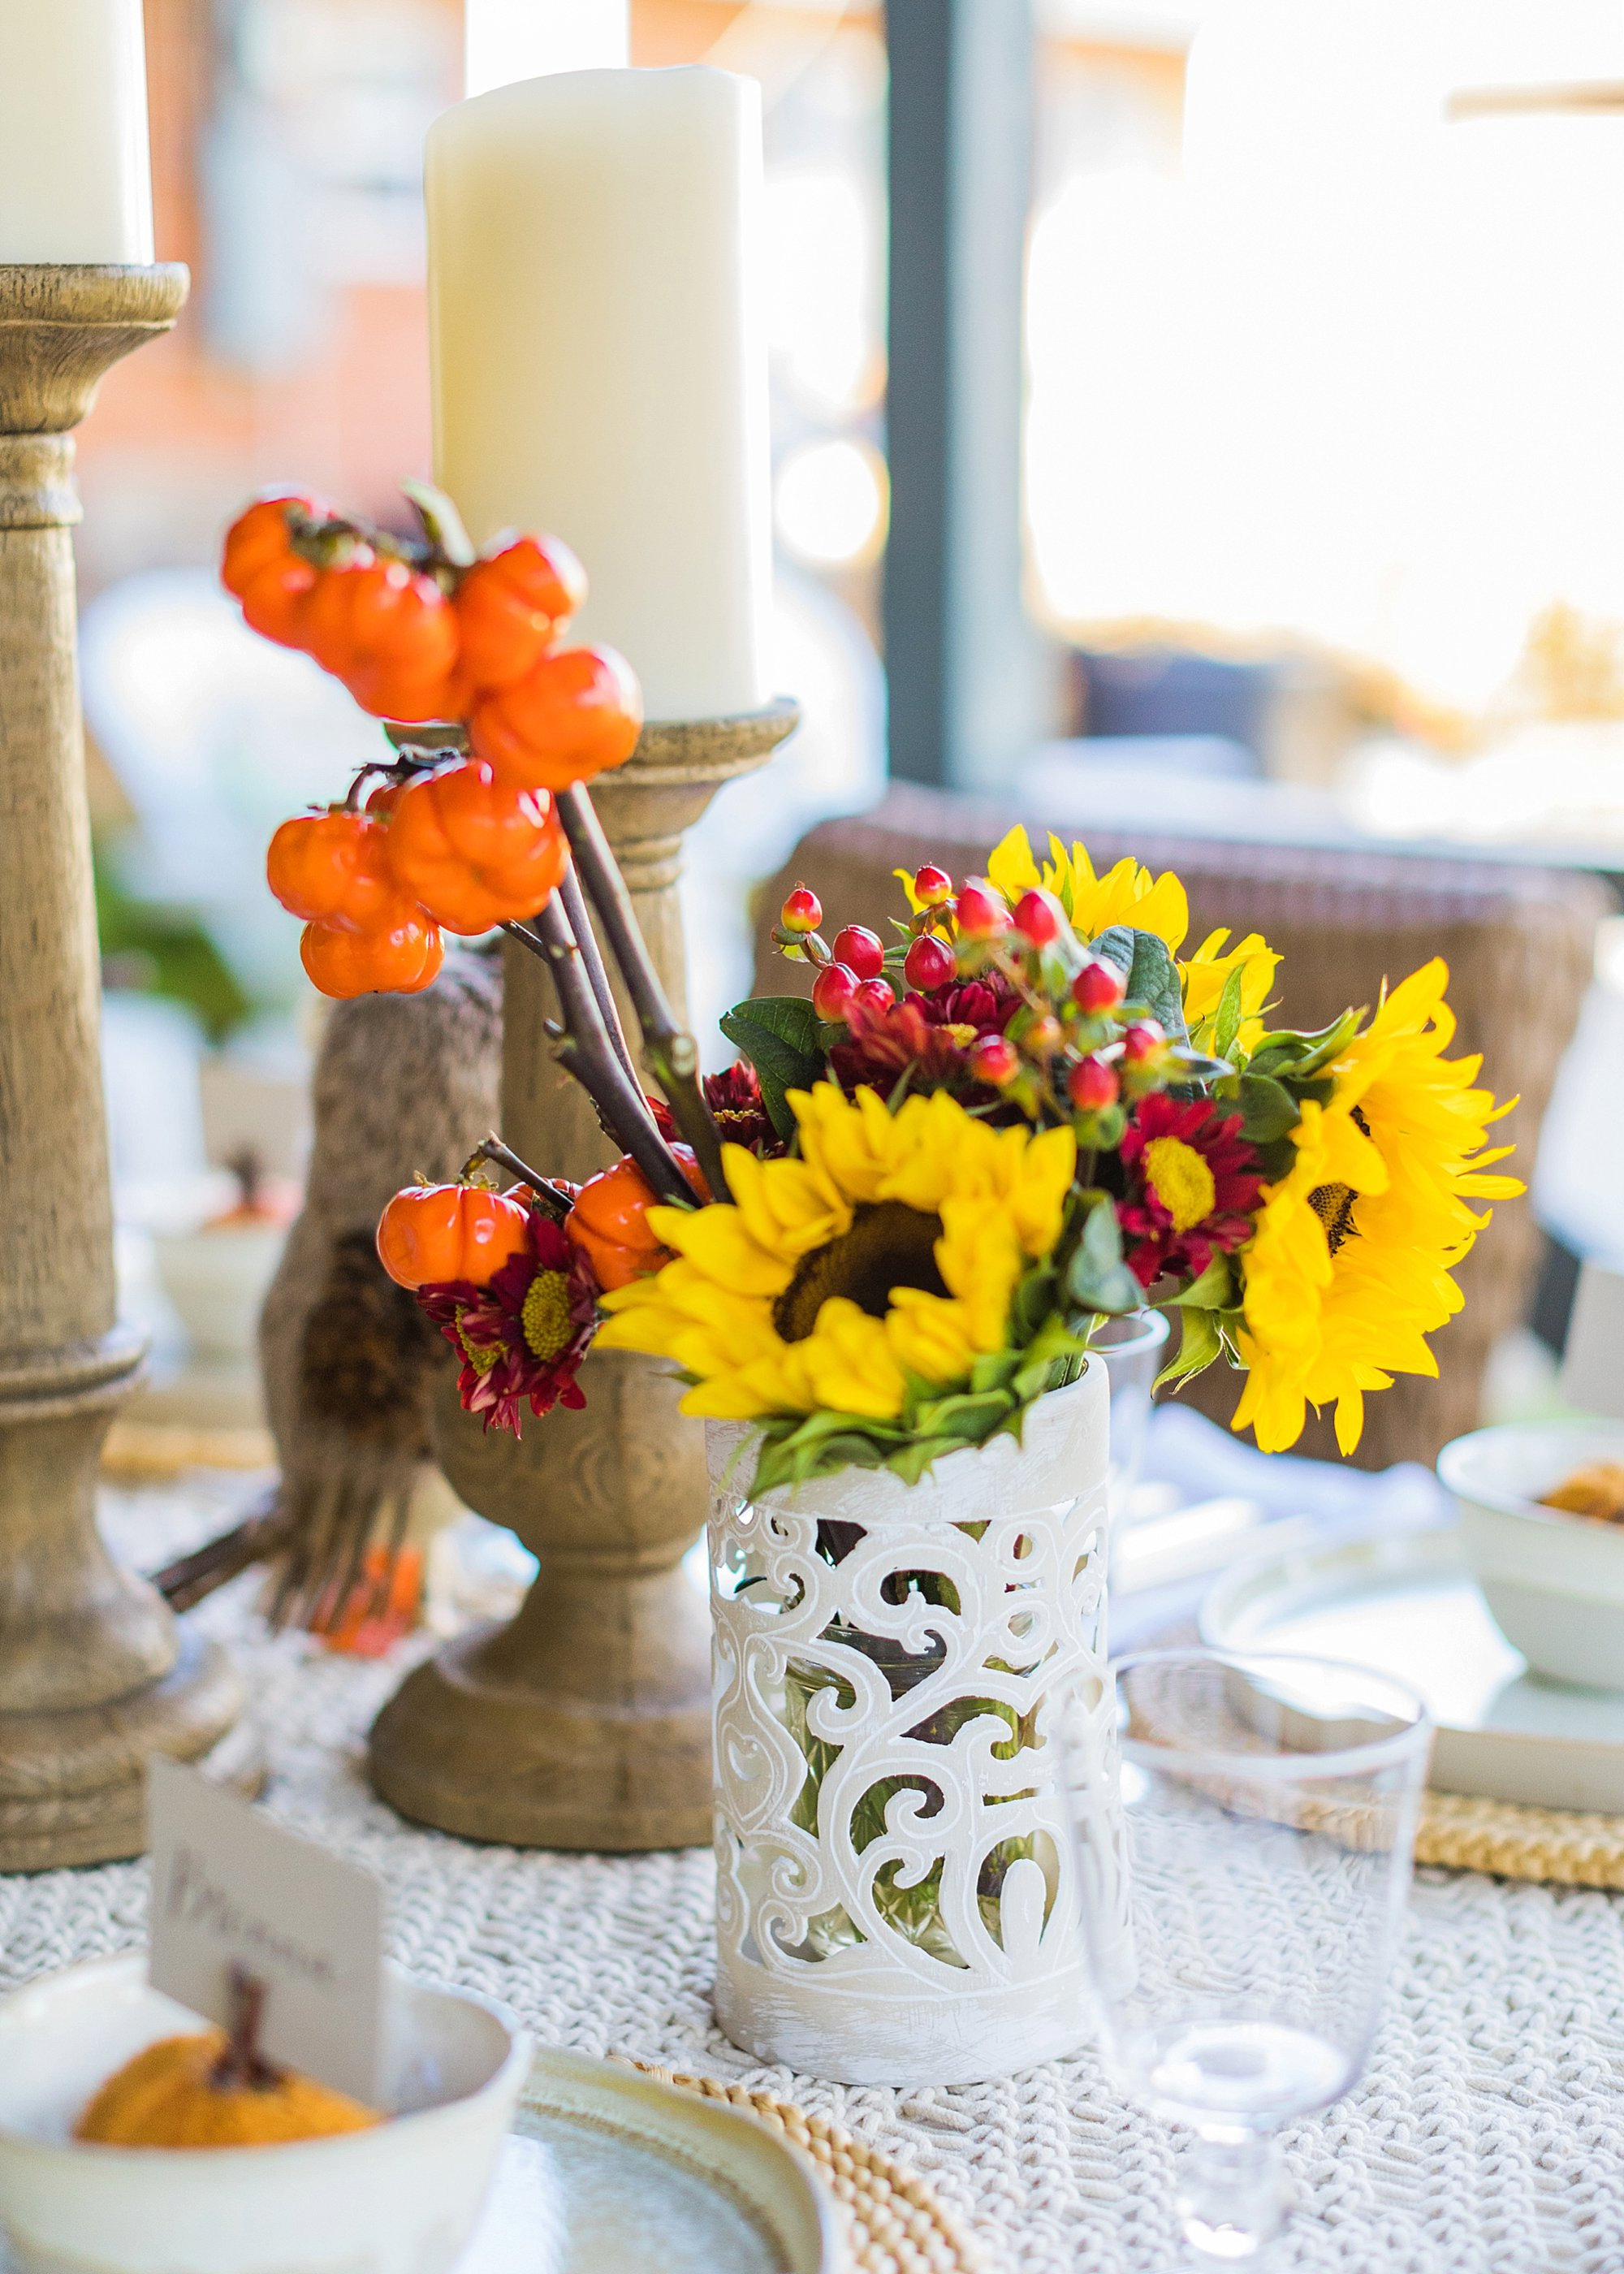 Outdoor Fall Decorating For Entertaining And Gatherings With